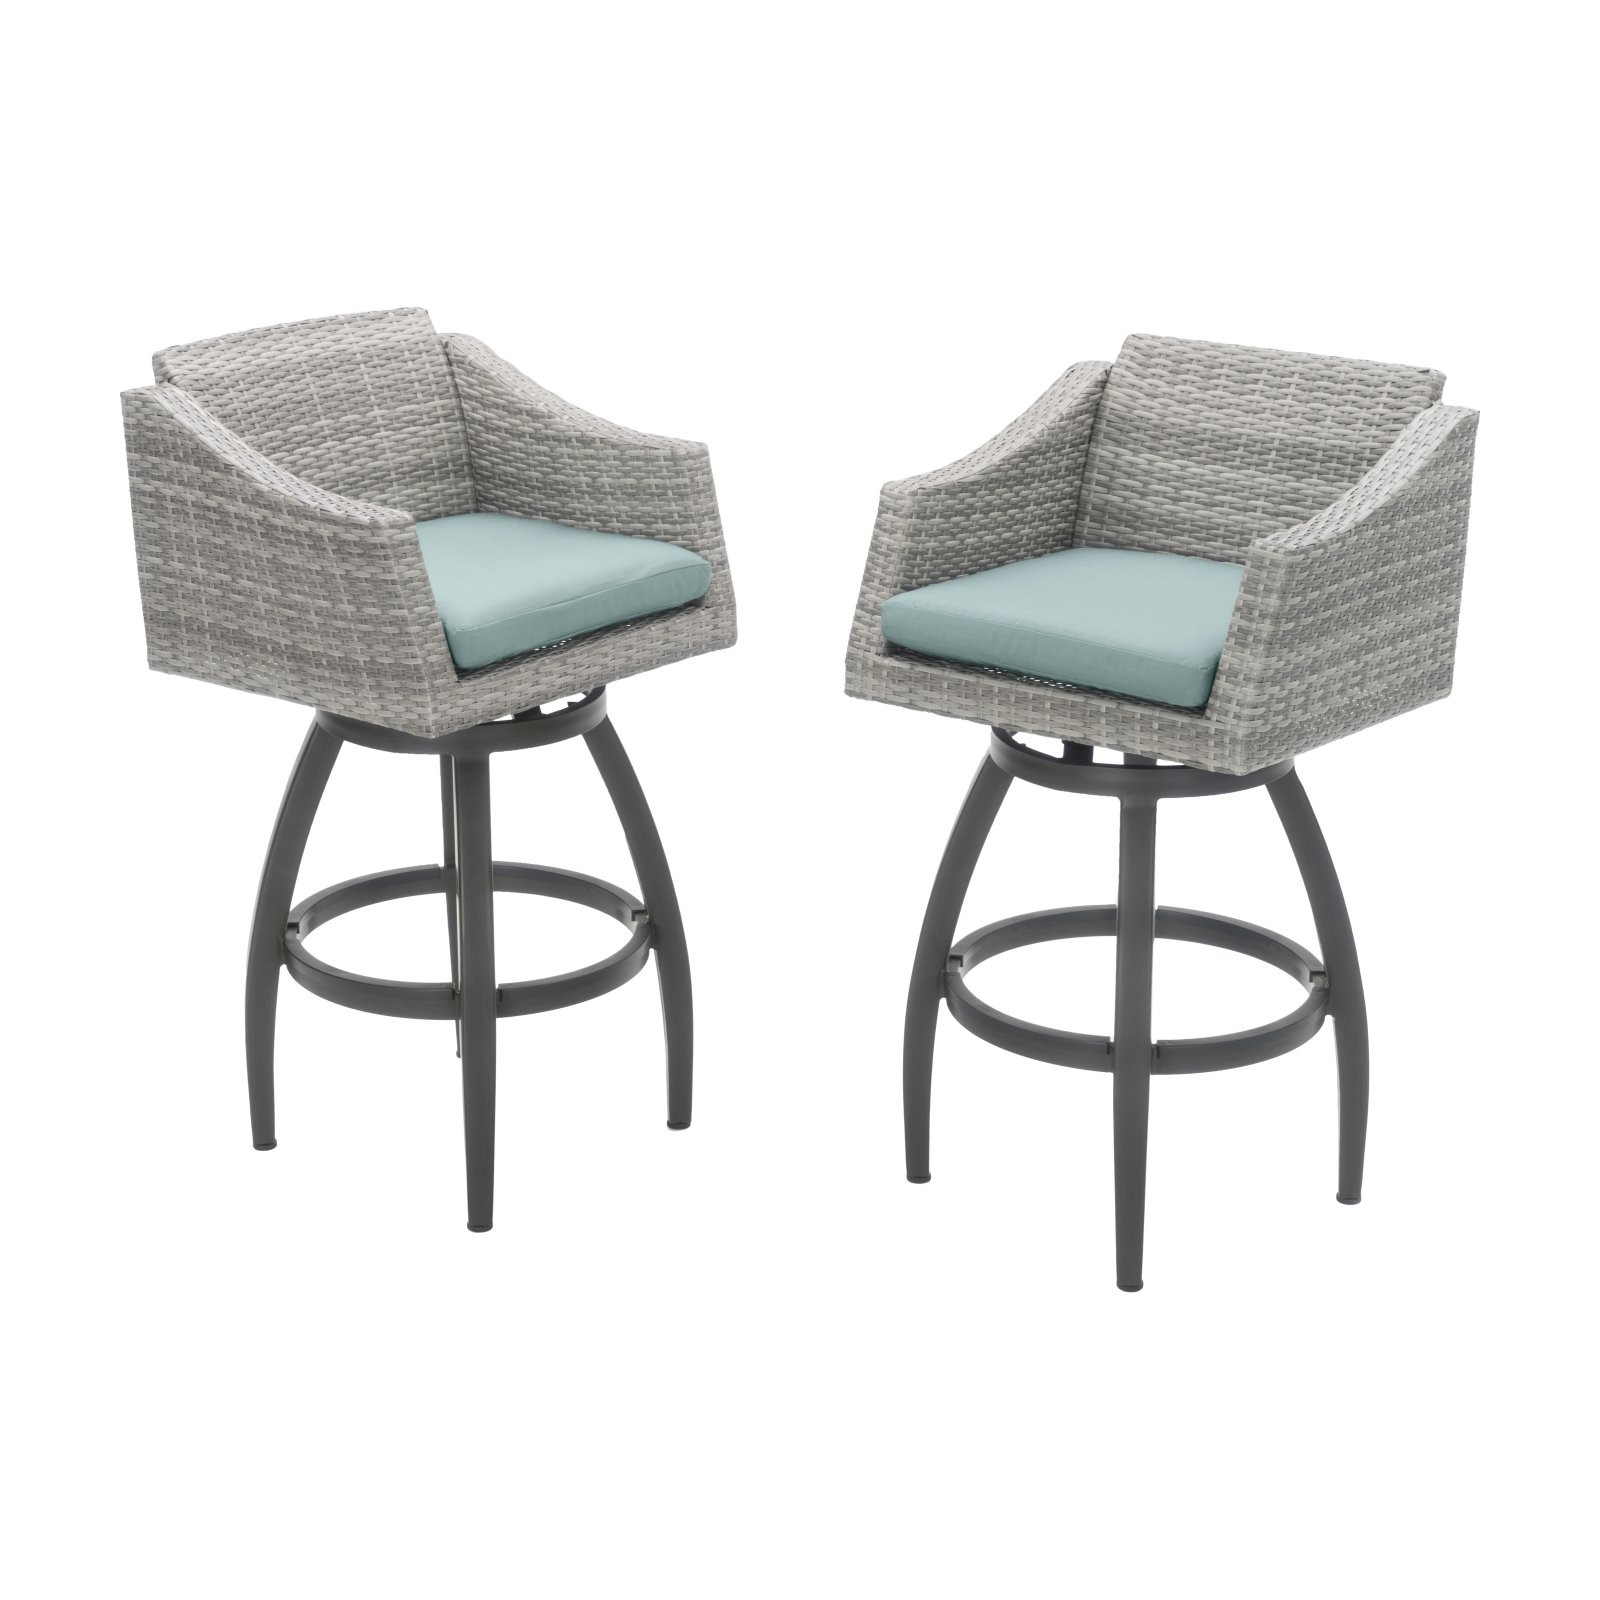 Cannes Set of 2 Swivel Barstools in Sunbrella Charcoal Grey by RST Brands